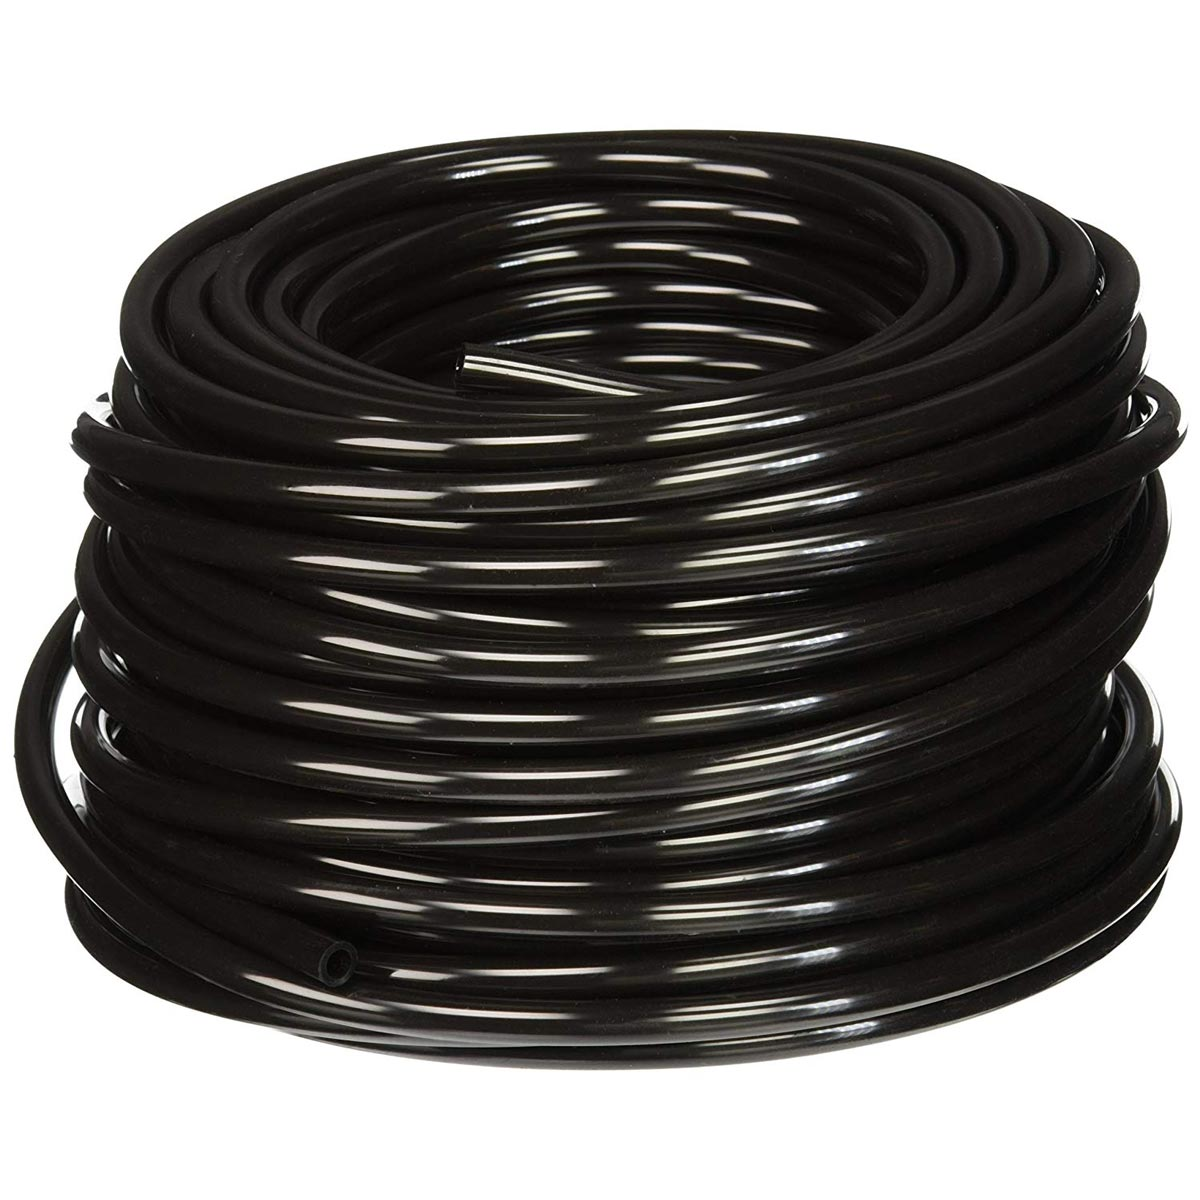 DriStorm 3/8 ID X 1/2 OD X 500 Ft Nylon Flex Tubing for 200 degree Air for Wall Cabinet Cavity Driers 20180629